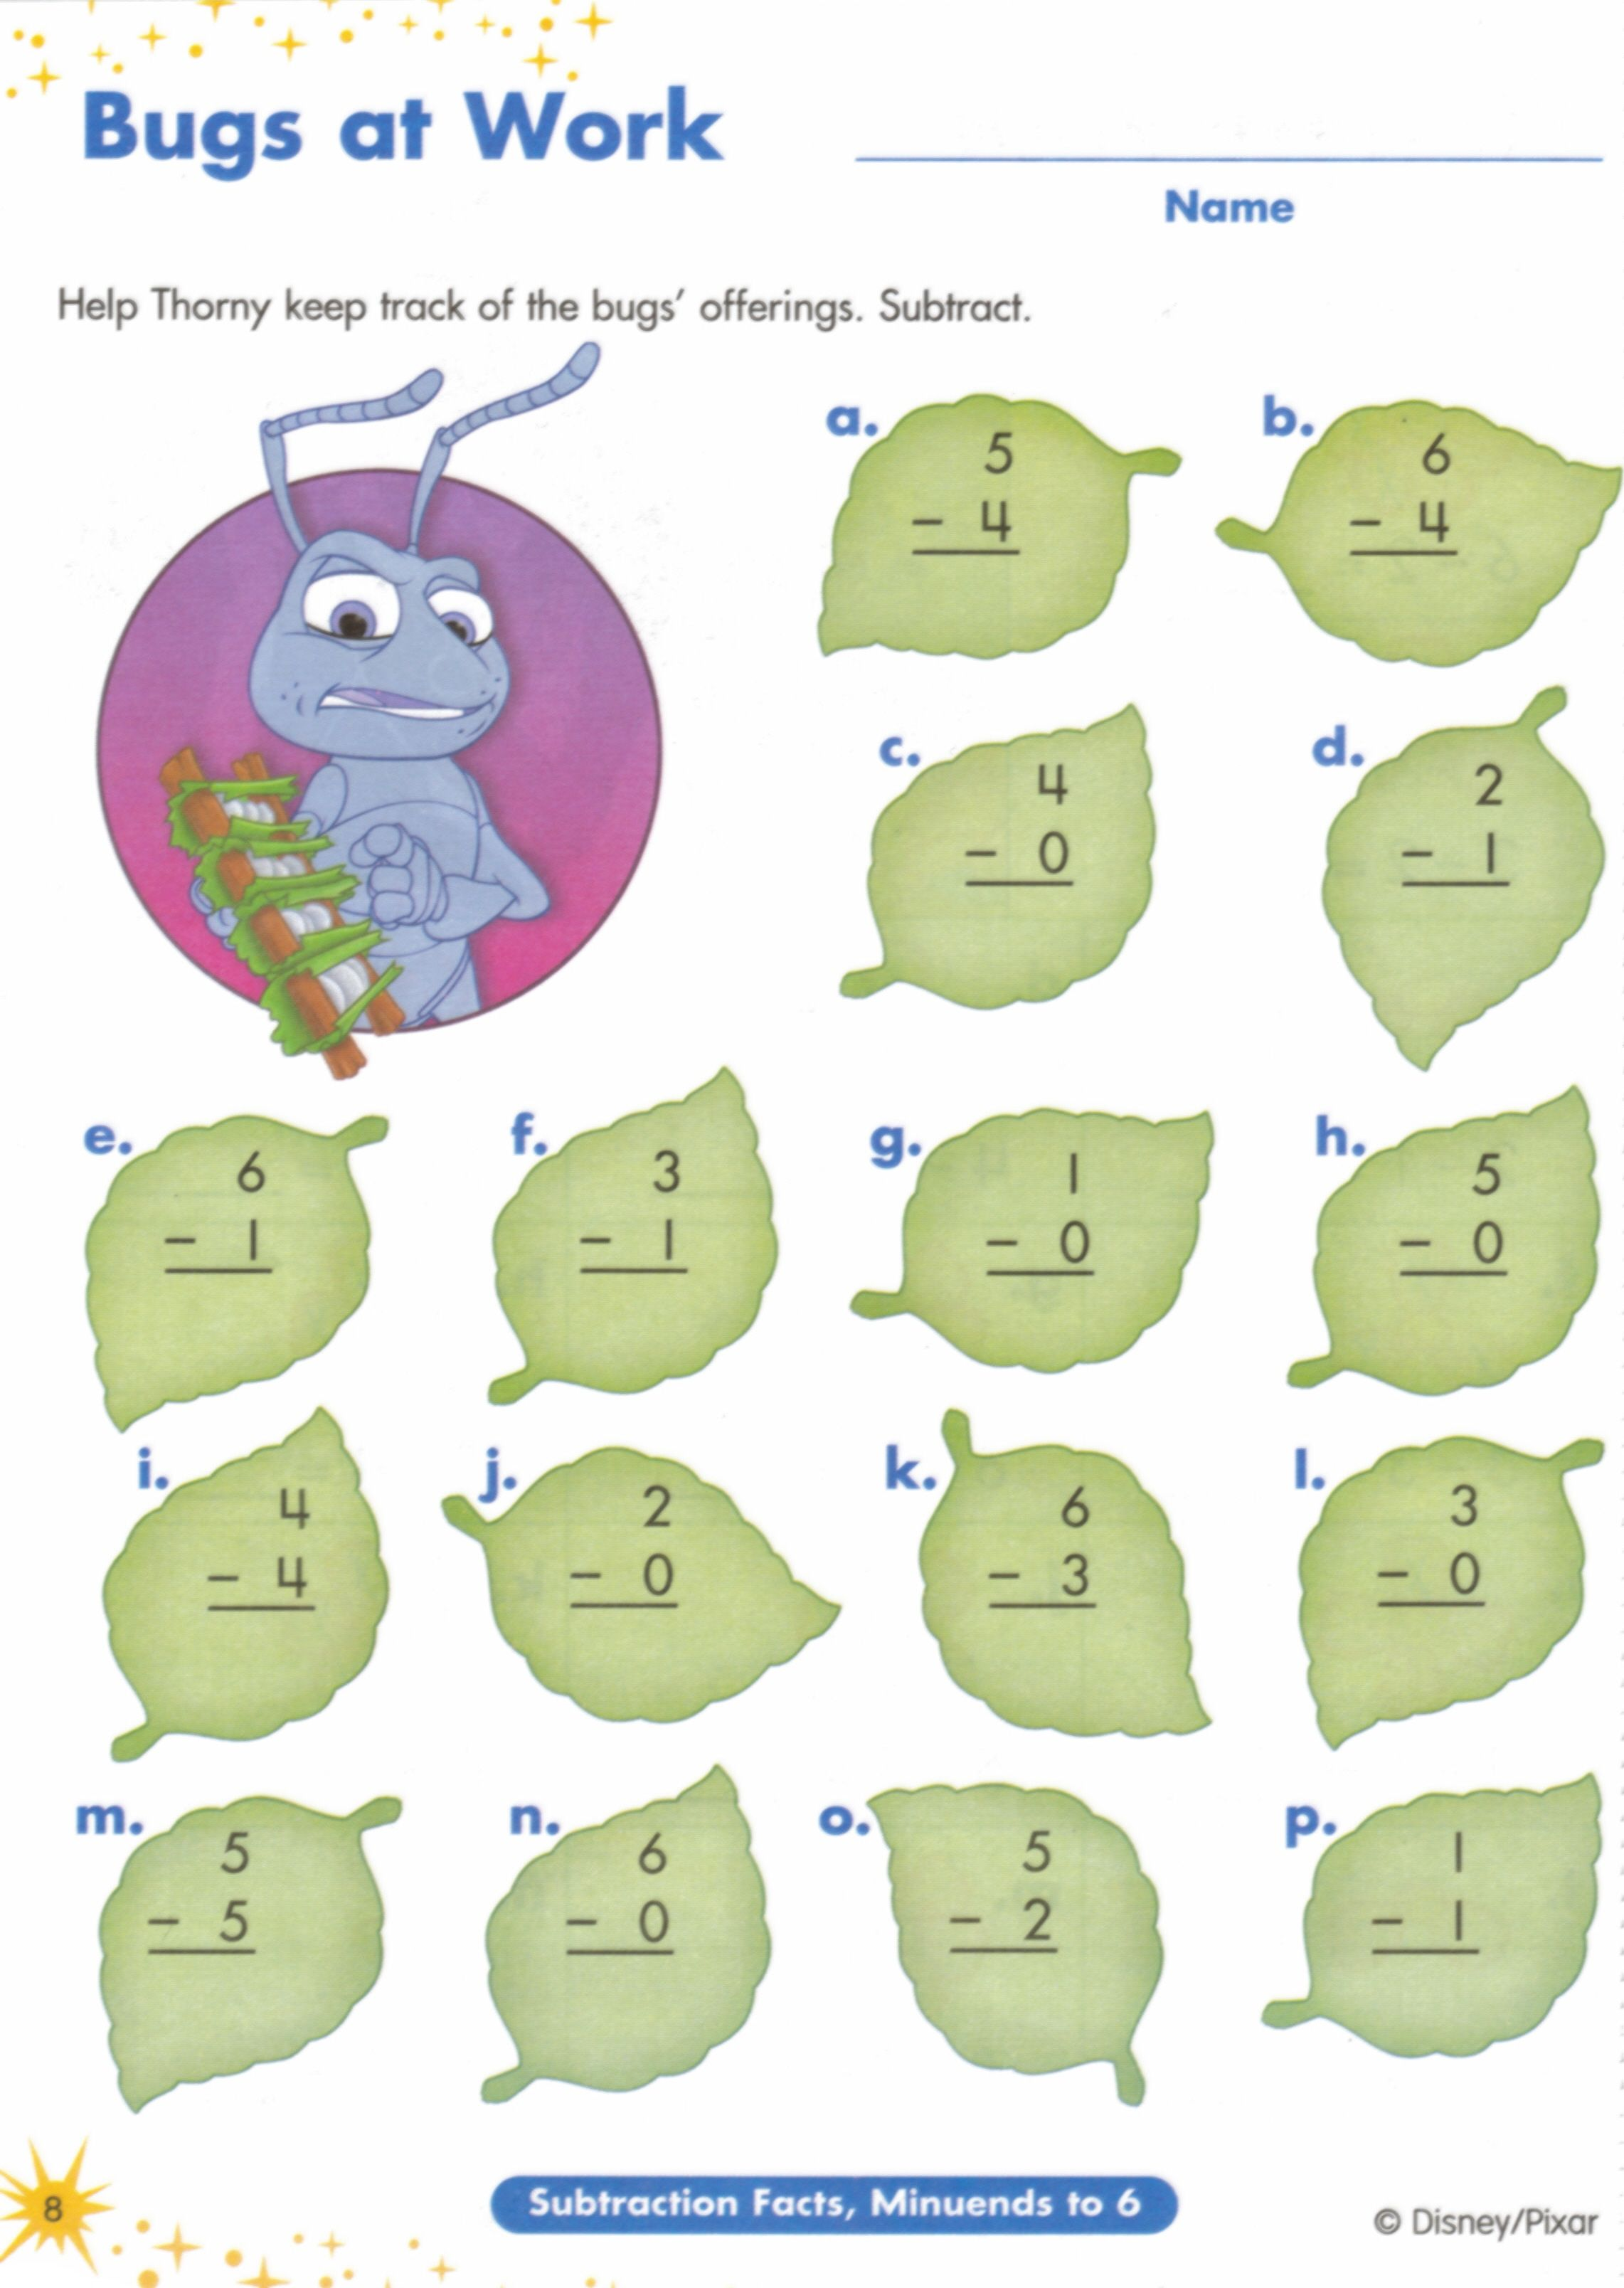 Proatmealus  Nice  Images About Worksheets On Pinterest  Fun Facts For Kids  With Excellent  Images About Worksheets On Pinterest  Fun Facts For Kids Earth Day Worksheets And Jungles With Breathtaking Easy Fraction Worksheets Also Spanish Grammar Worksheets In Addition Fahrenheit  Worksheet And Rd Grade Area Worksheets As Well As Pizzazz Worksheets Additionally Fractions Word Problems Worksheets From Pinterestcom With Proatmealus  Excellent  Images About Worksheets On Pinterest  Fun Facts For Kids  With Breathtaking  Images About Worksheets On Pinterest  Fun Facts For Kids Earth Day Worksheets And Jungles And Nice Easy Fraction Worksheets Also Spanish Grammar Worksheets In Addition Fahrenheit  Worksheet From Pinterestcom